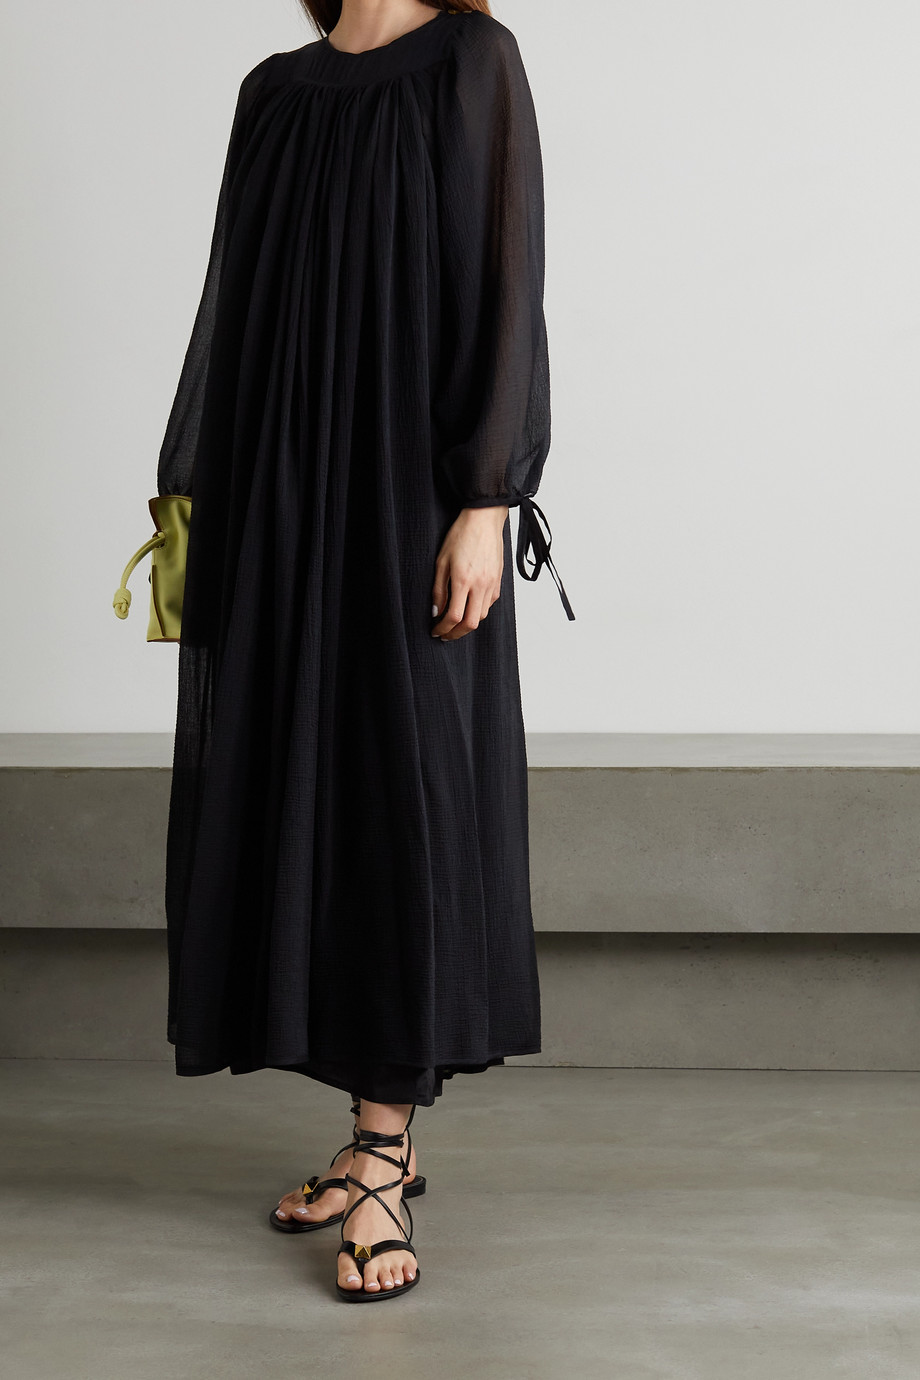 LOEWE + Paula's Ibiza cotton and silk-blend crepon maxi dress